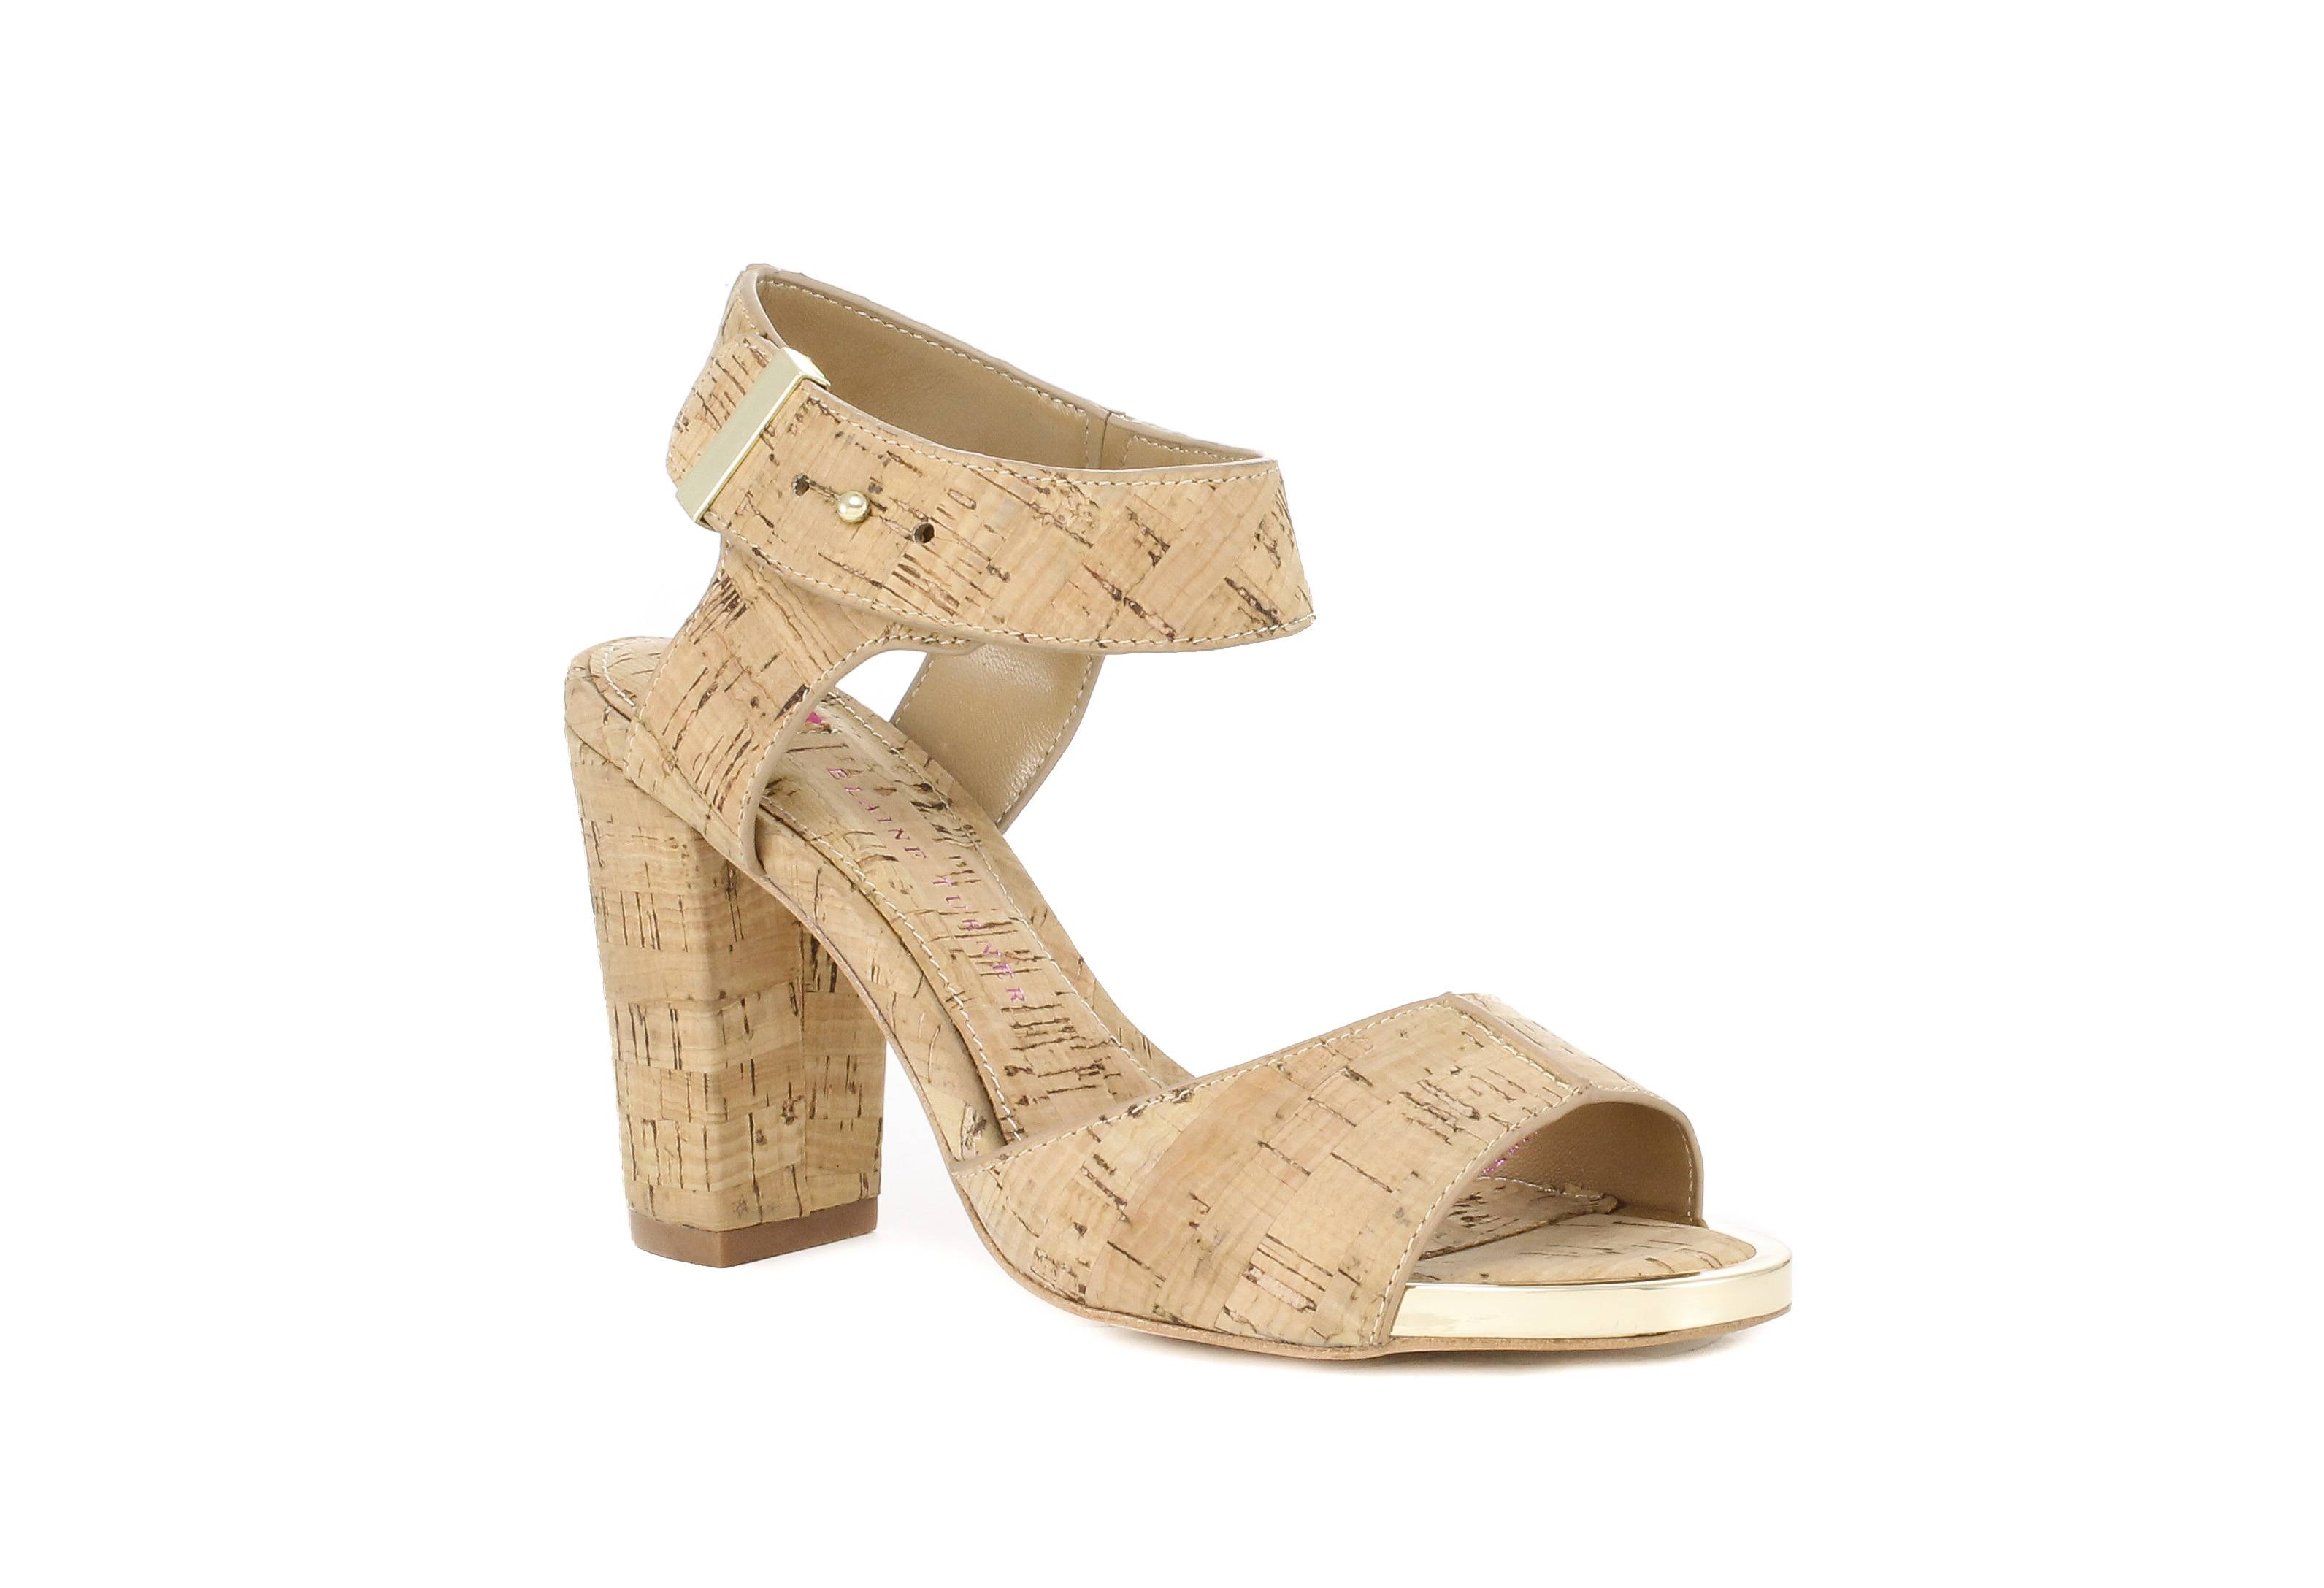 Cork is even being used more in shoes, like the Renata Cork Stacked Heel.